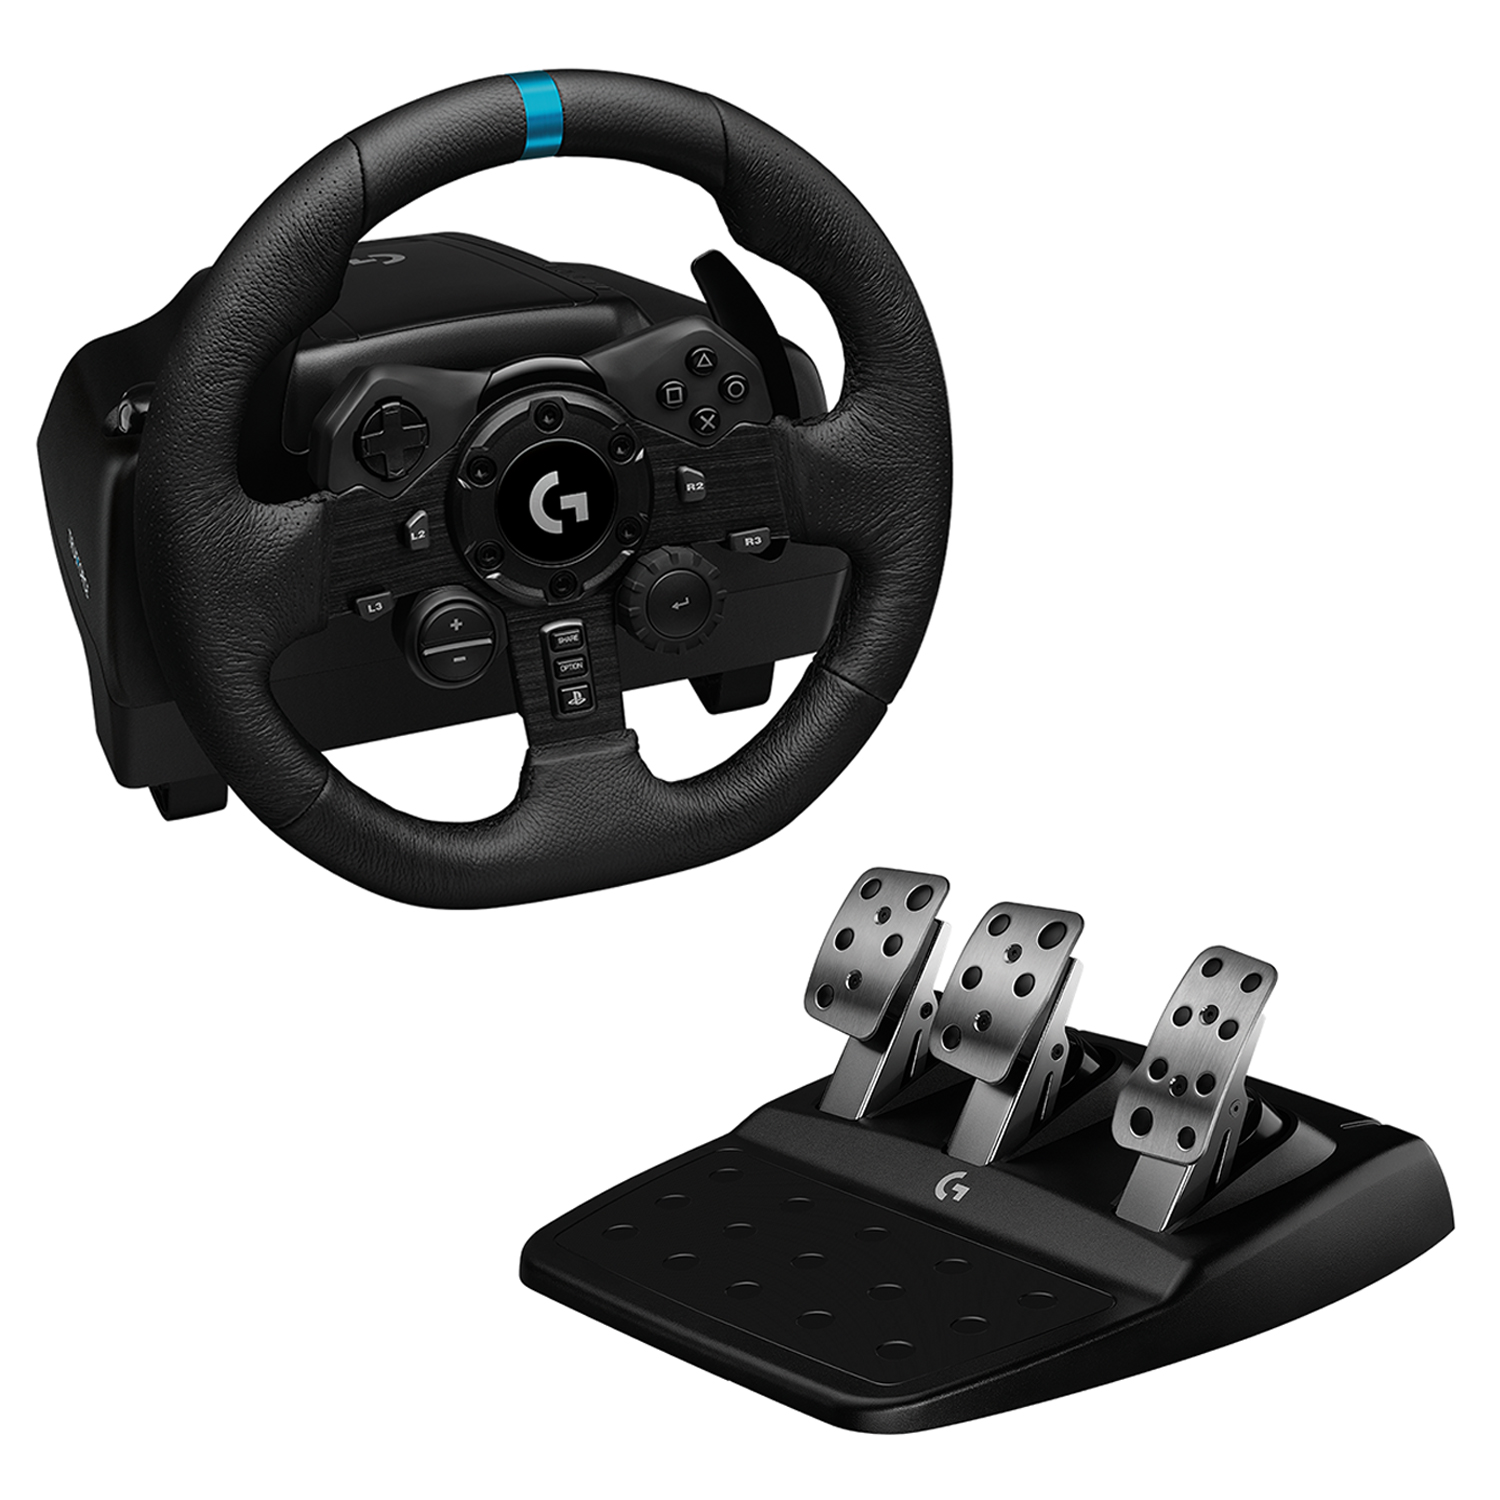 Logitech - G923 Racing Wheel and Pedals for PS4 and PC - USB